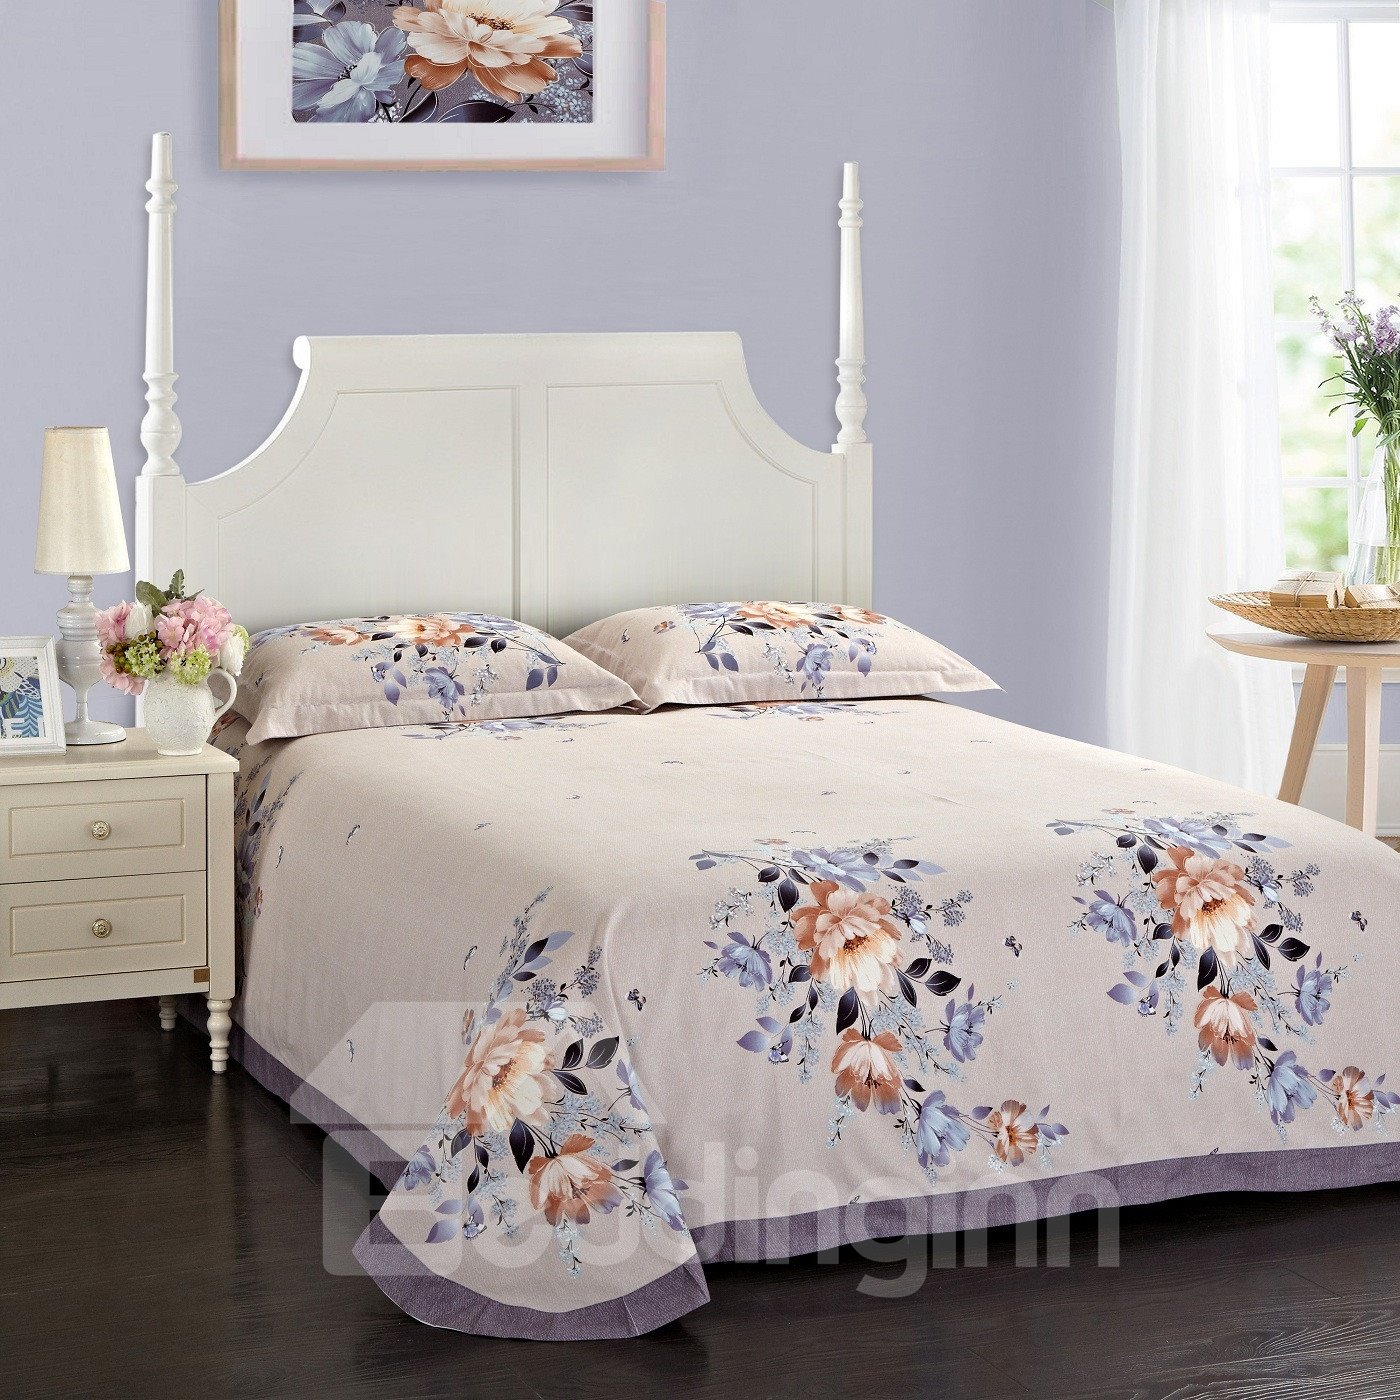 Butterflies and Flowers Blooming Pattern Pastoral Style Cotton 4-Piece Bedding Sets/Duvet Cover